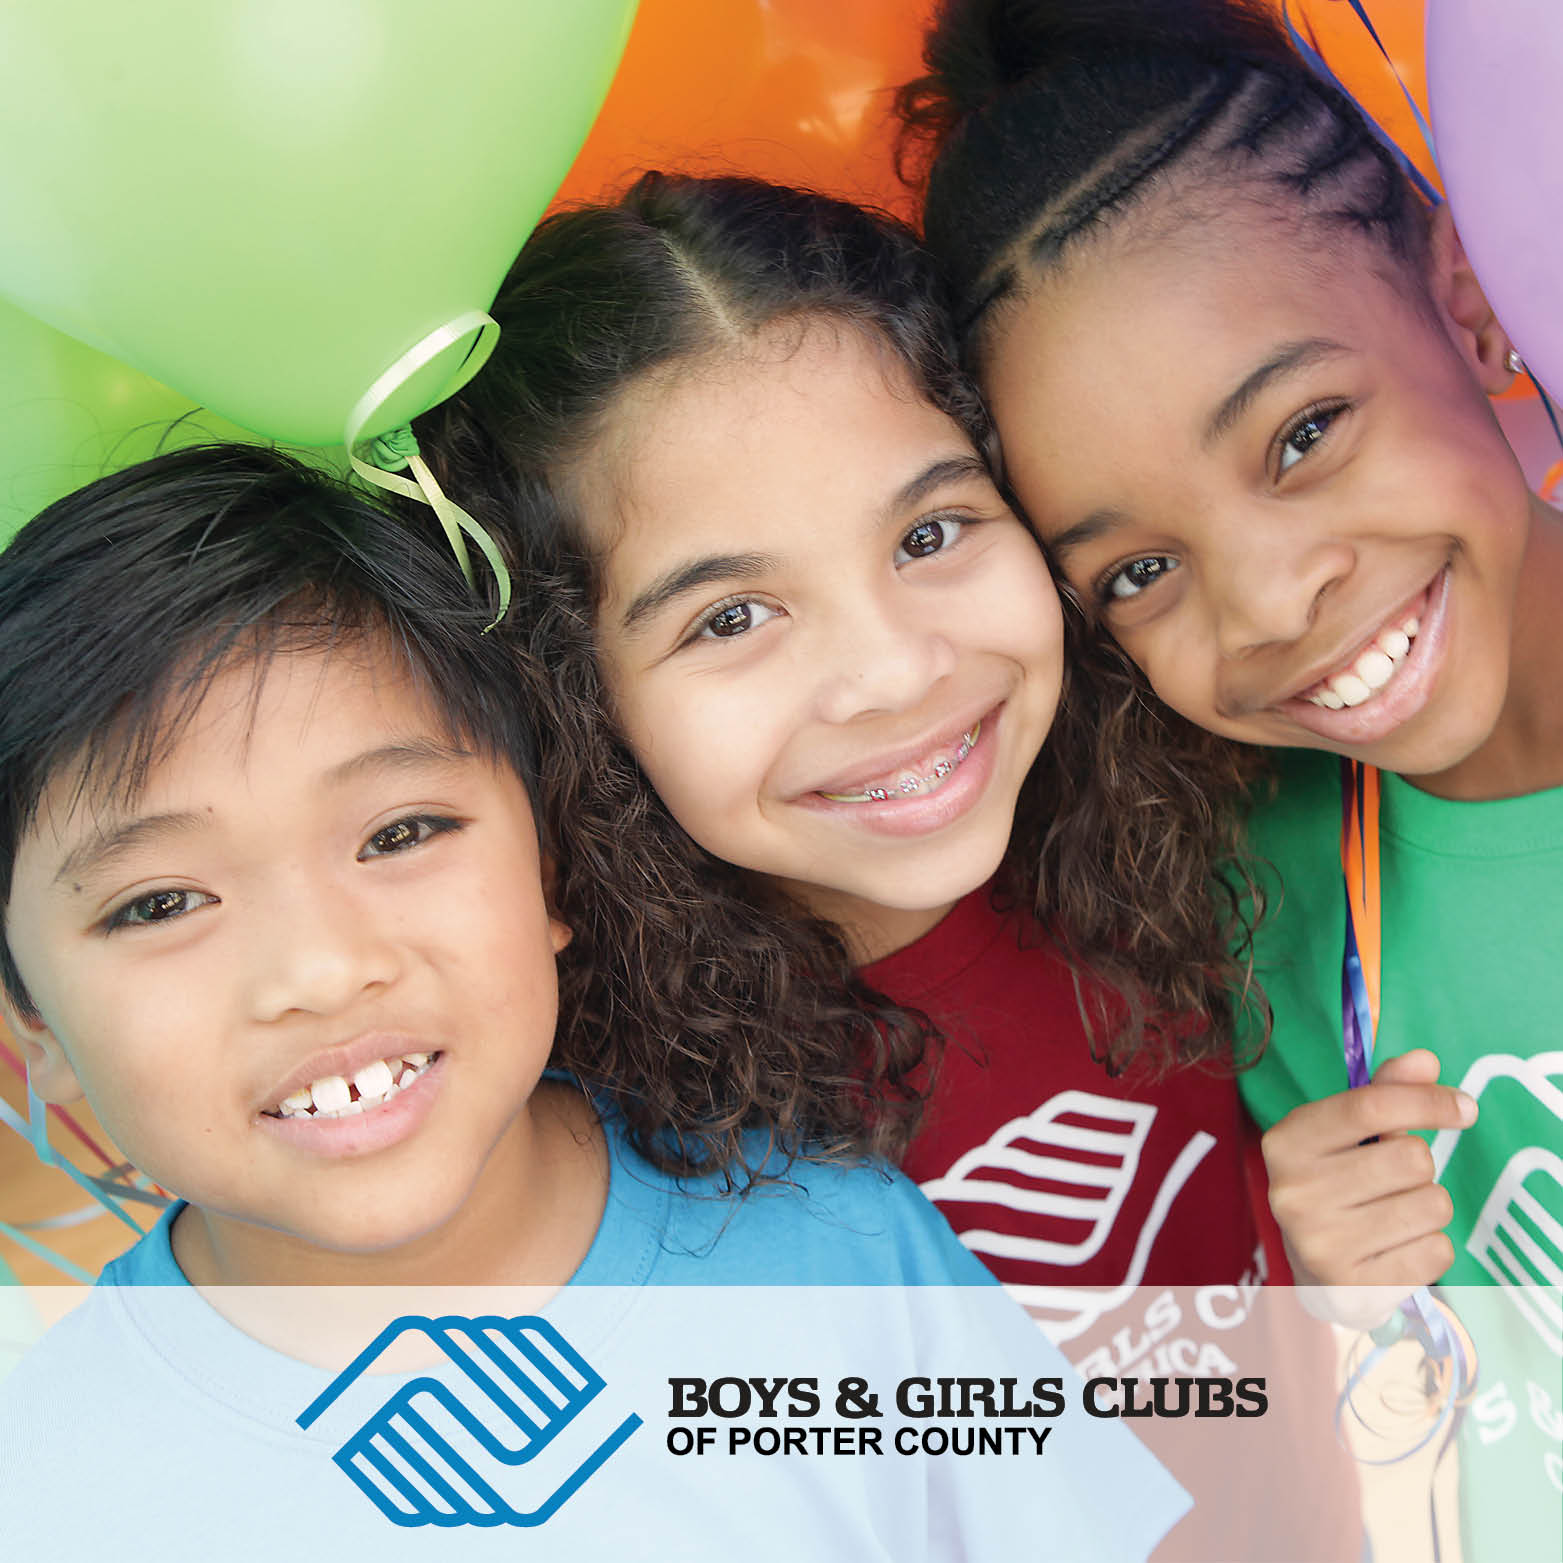 BOYS AND GIRLS CLUBS OF PORTER COUNTY INC's Photo